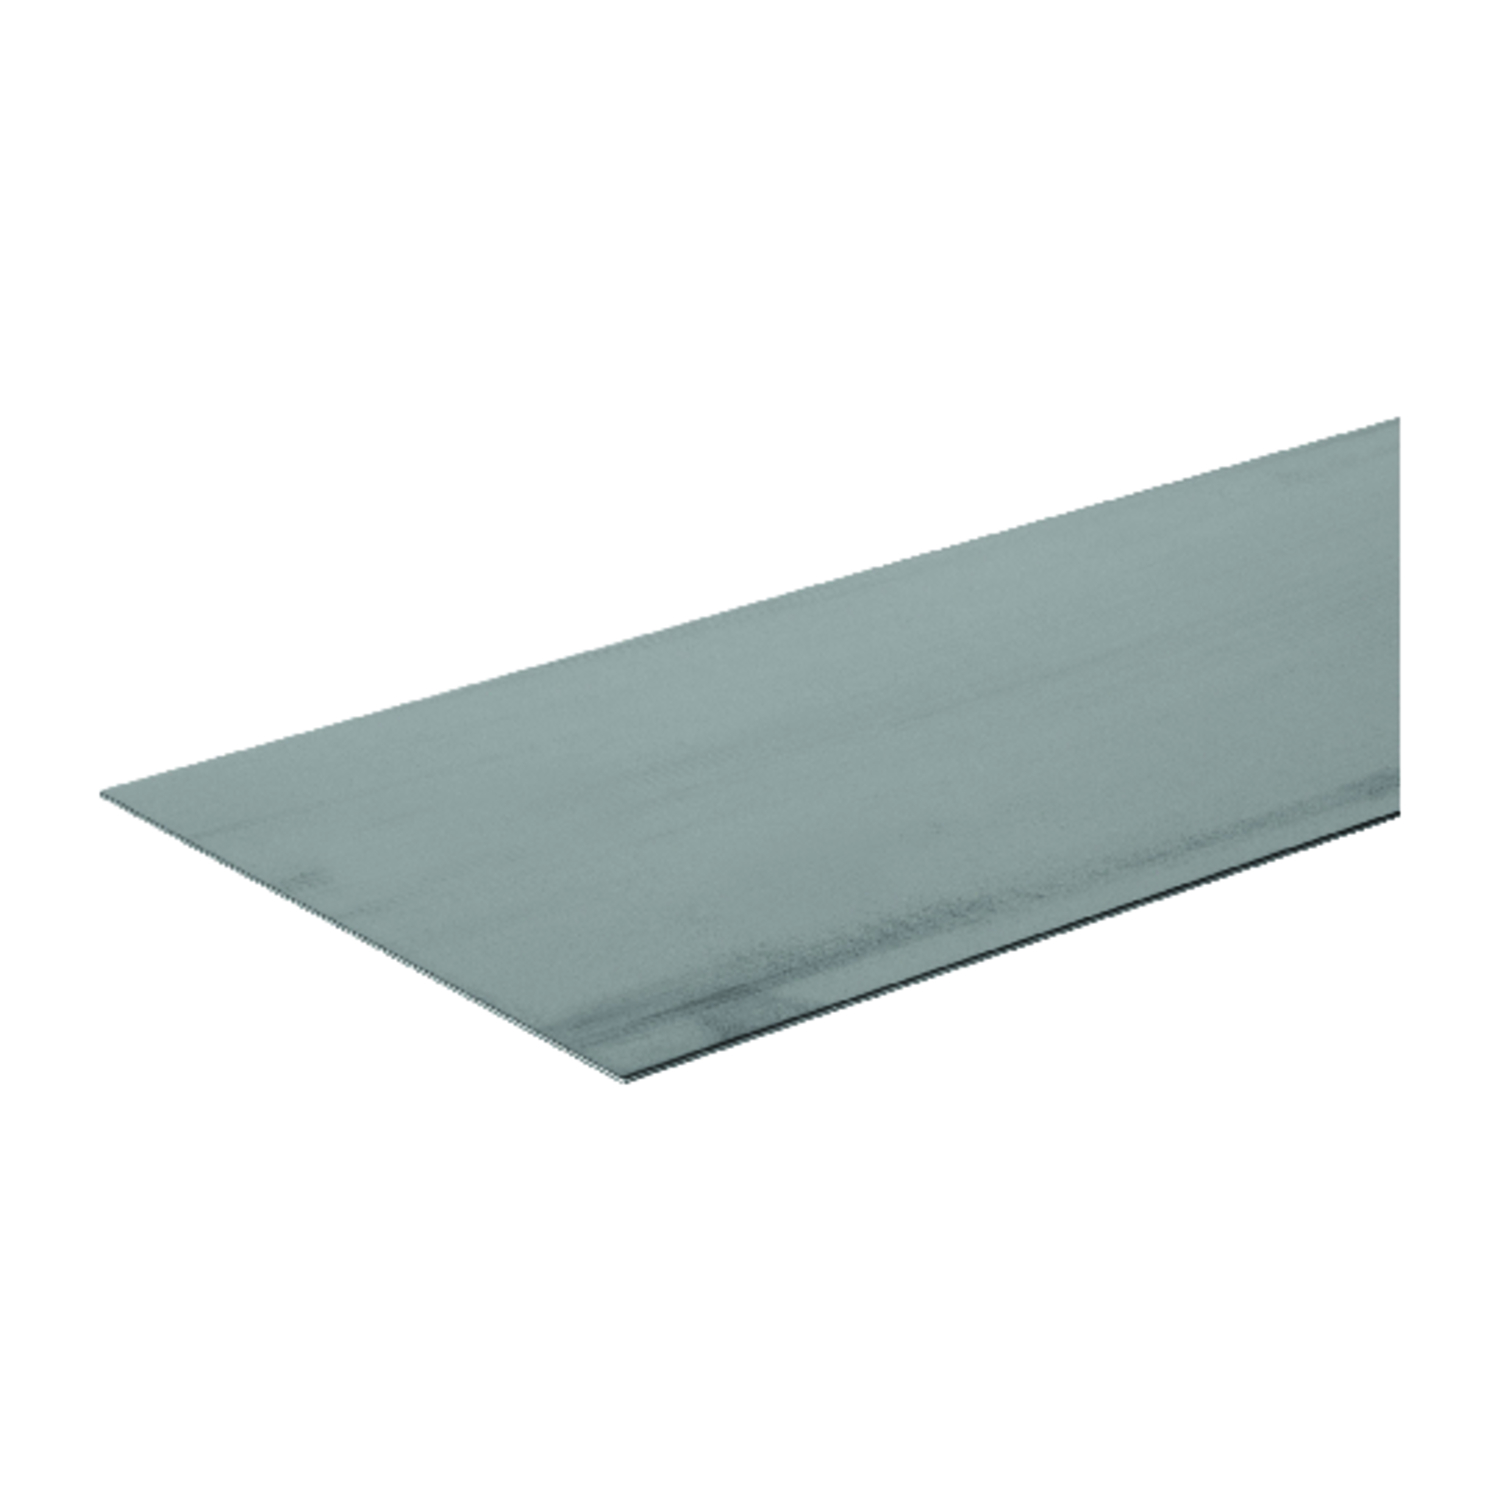 Boltmaster Weldable Sheet 24 in. x 48 in. 22 Ga Sign Making, Auto/Truck Body Repair and Shelving Bul